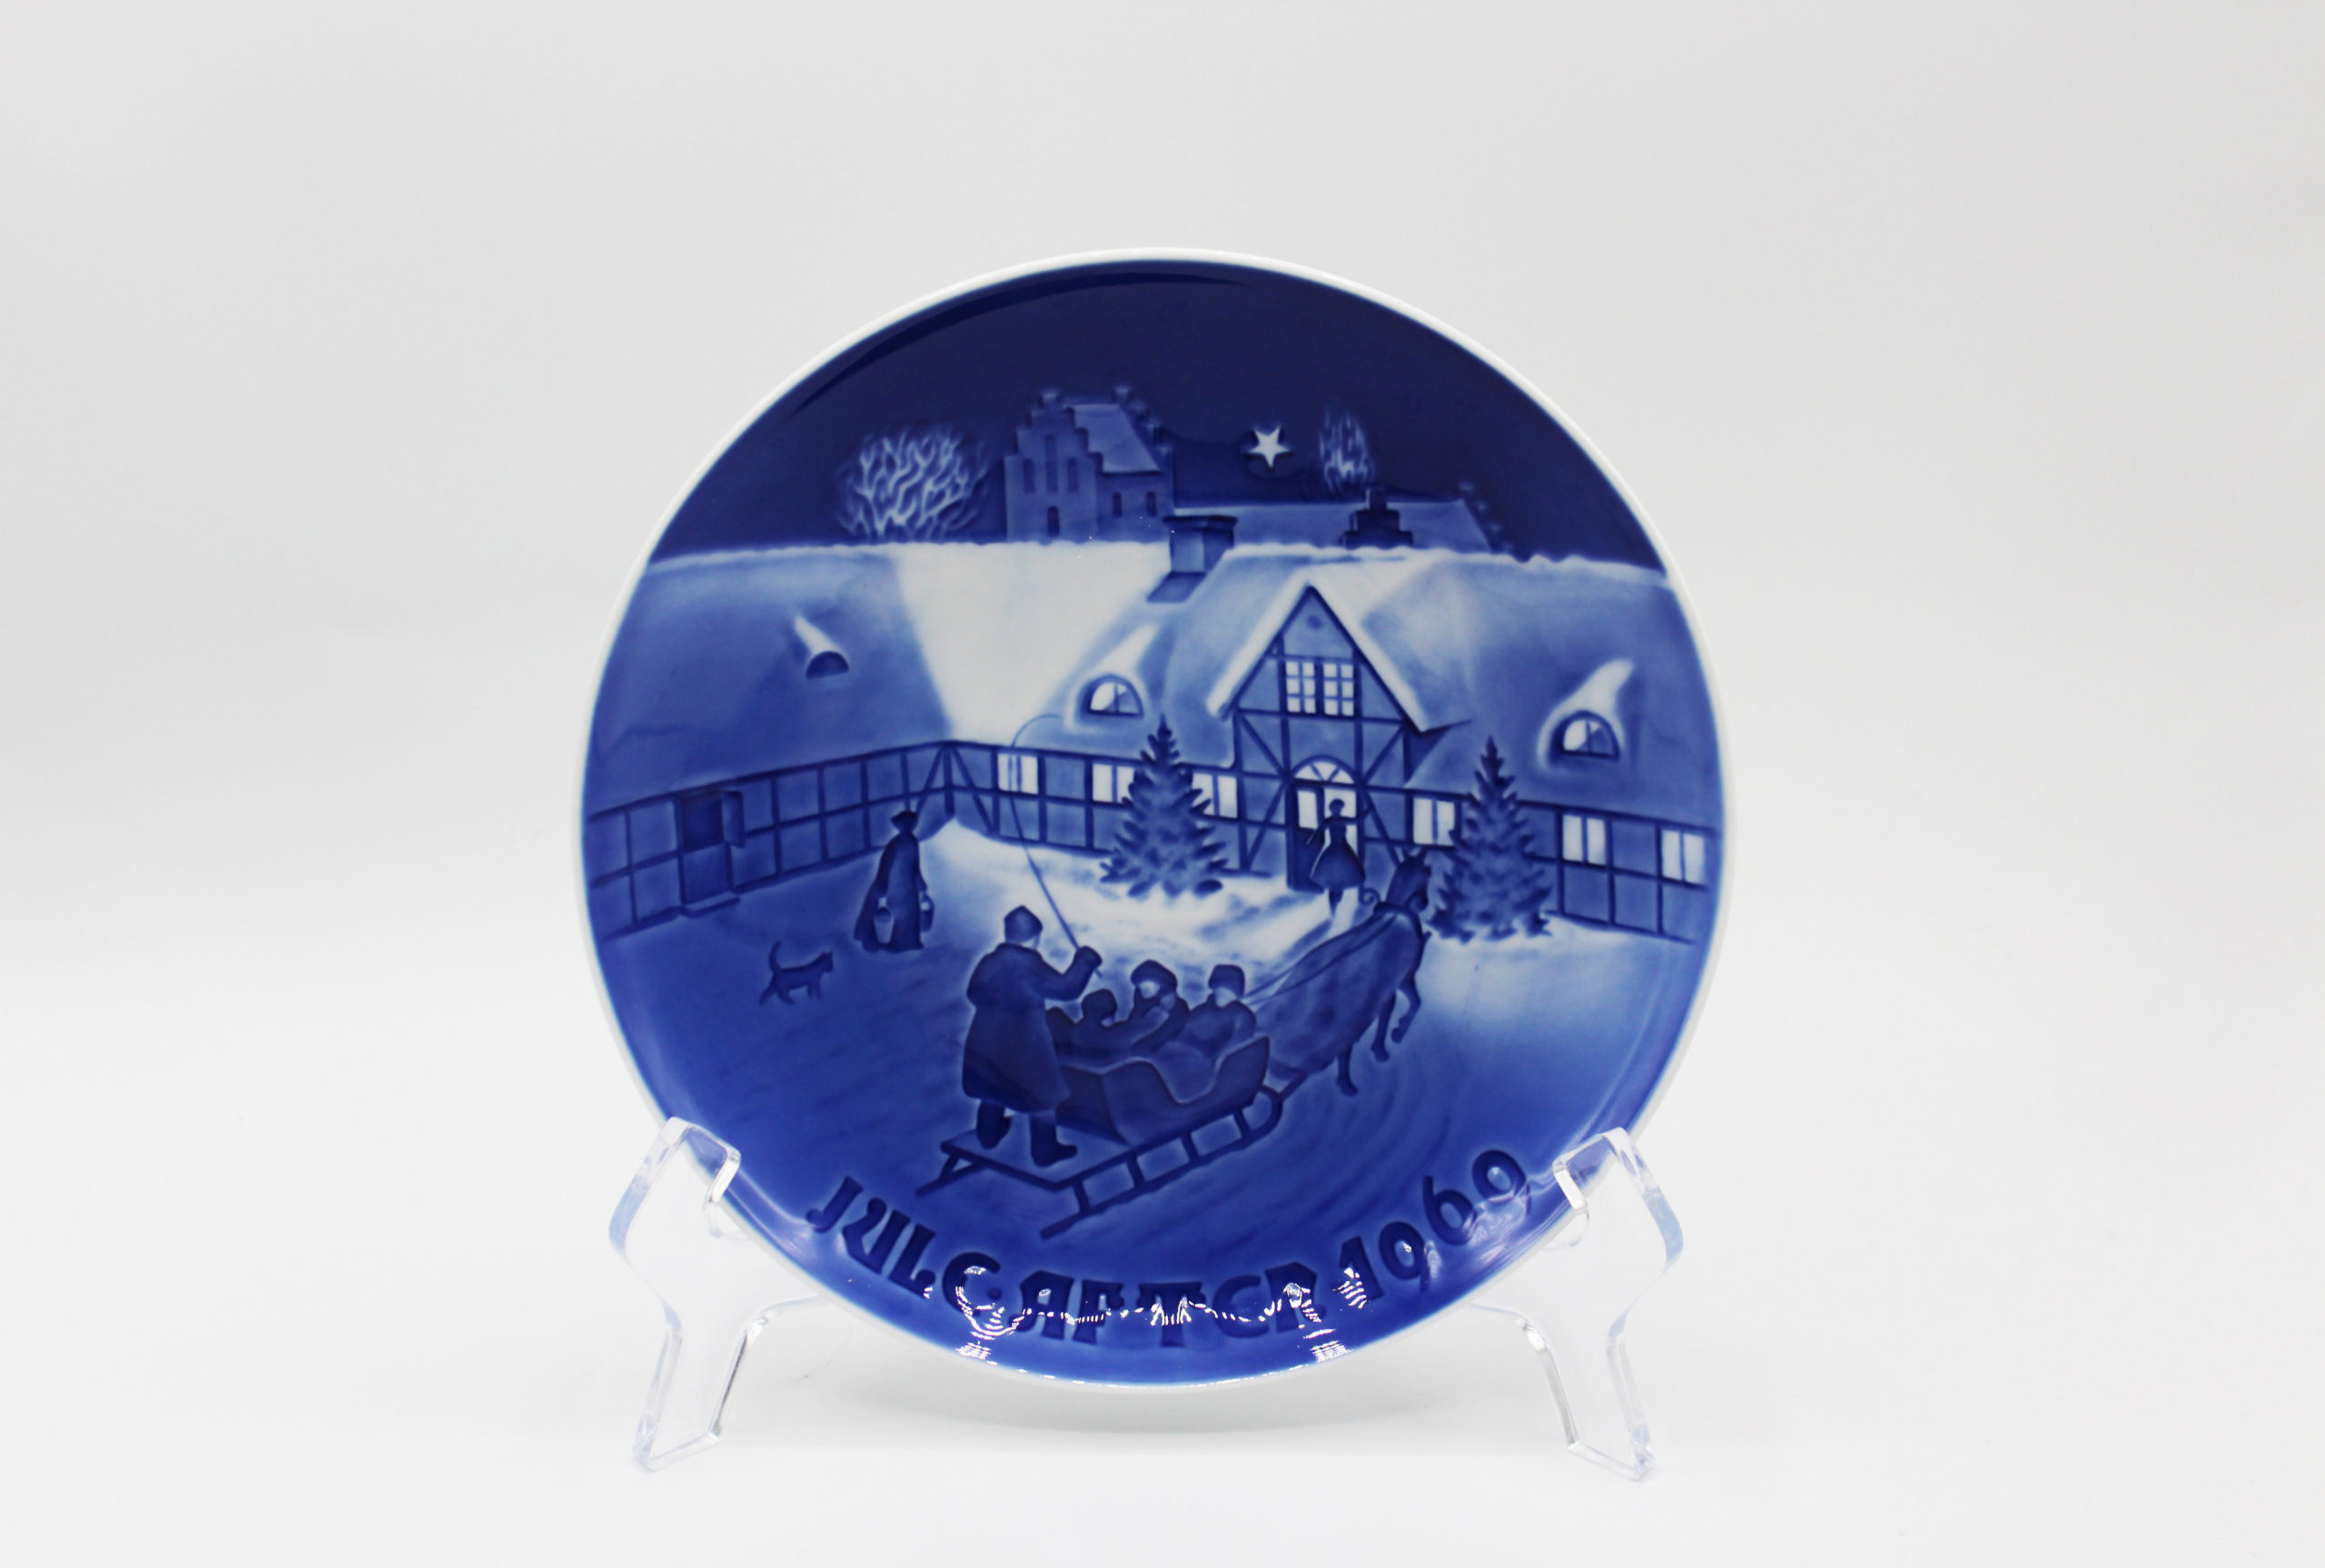 1969 B&G Bing & Grondahl Arrival of Christmas Guests Collectors Plate | Whispering City RVA